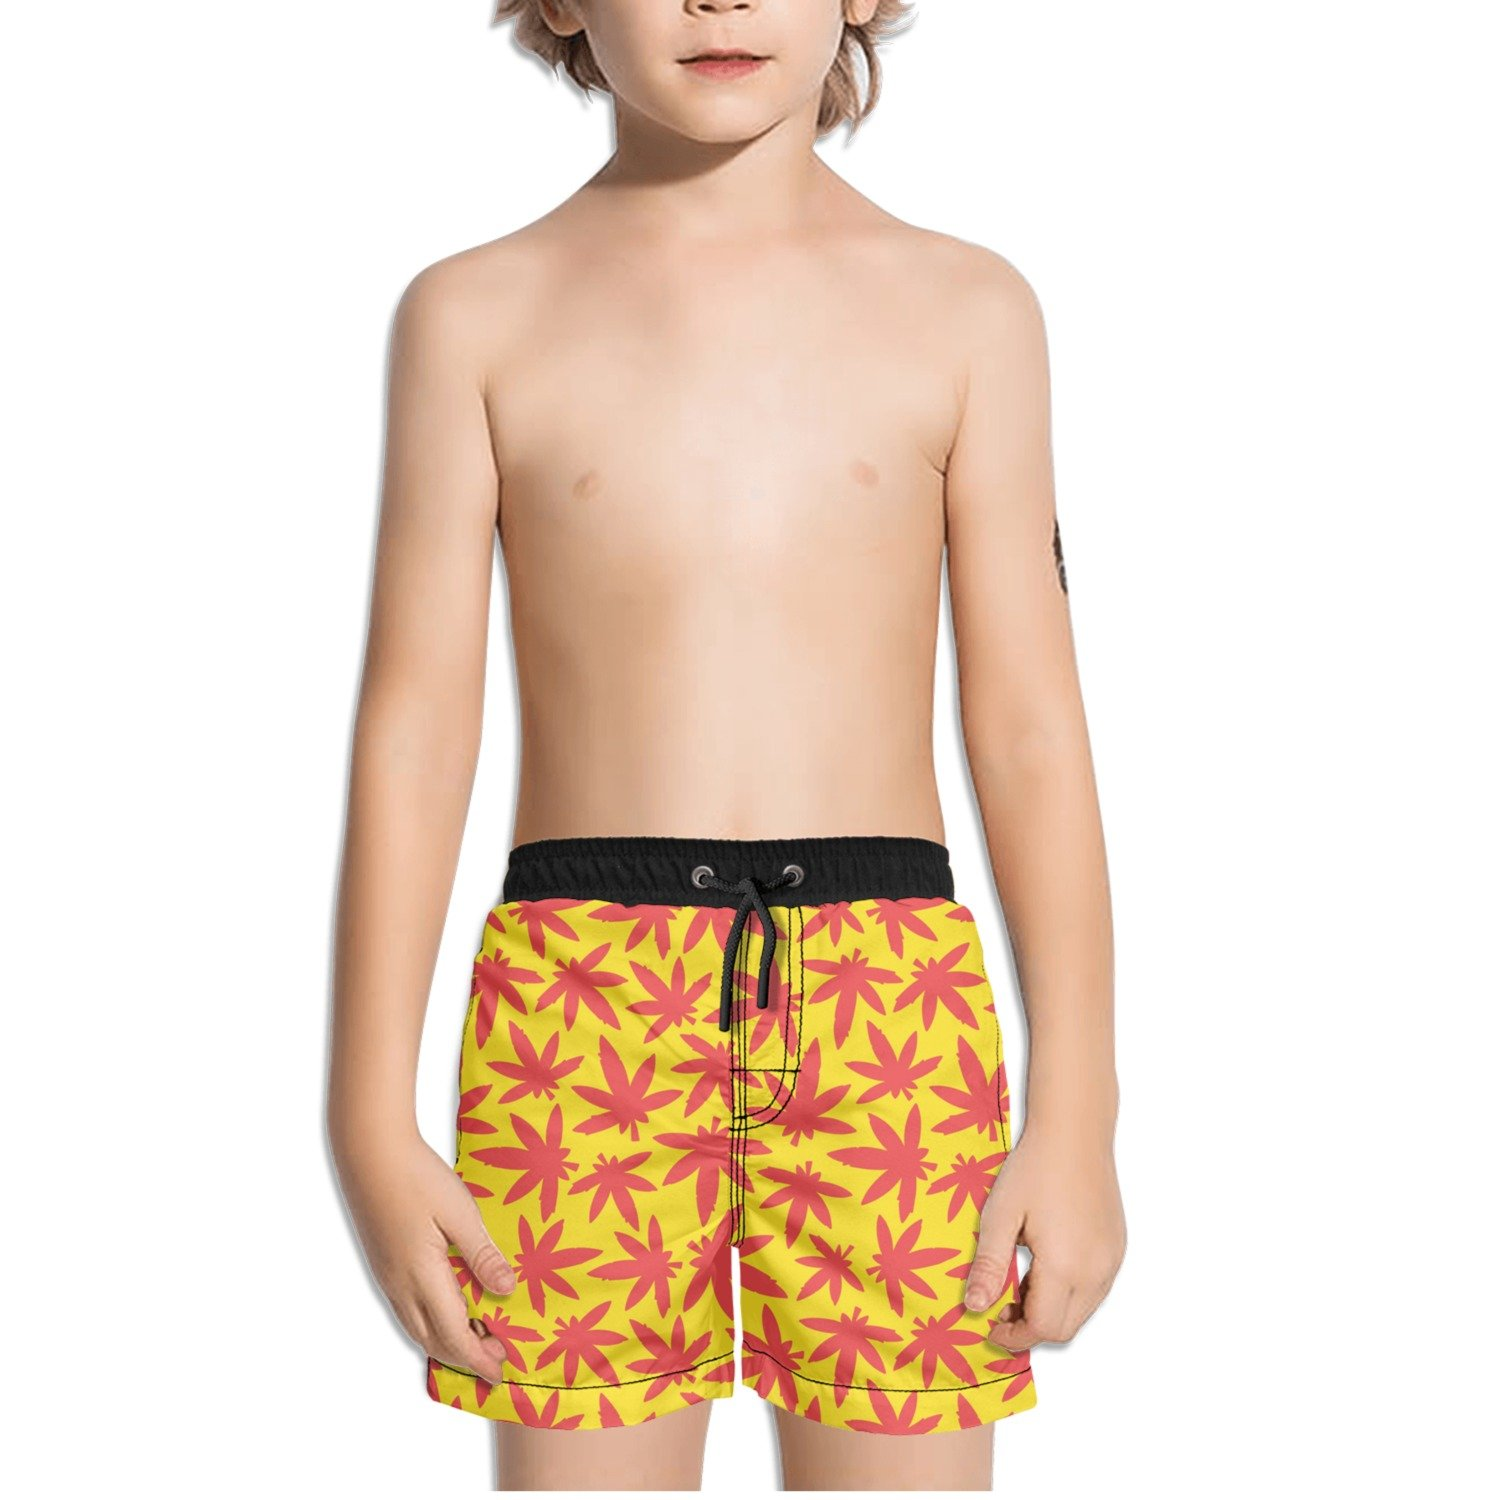 Ouxioaz Boys Swim Trunk Marijuana Smoking Leaves Beach Board Shorts